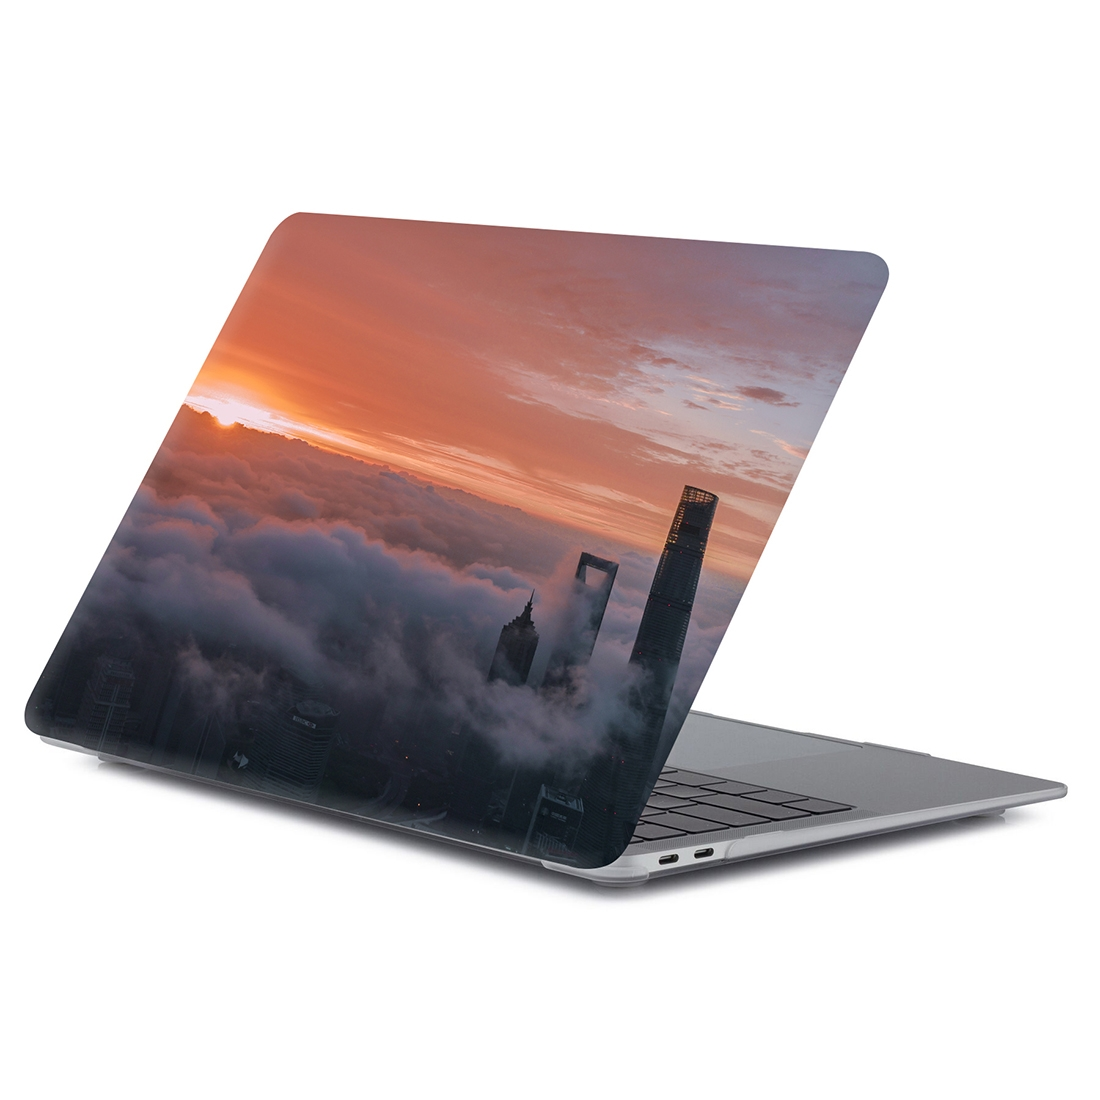 Printing Matte Laptop Protective Case for MacBook Air 11.6 inch A1465 (2012 - 2015) / A1370 (2010 - 2011) (RS-035)